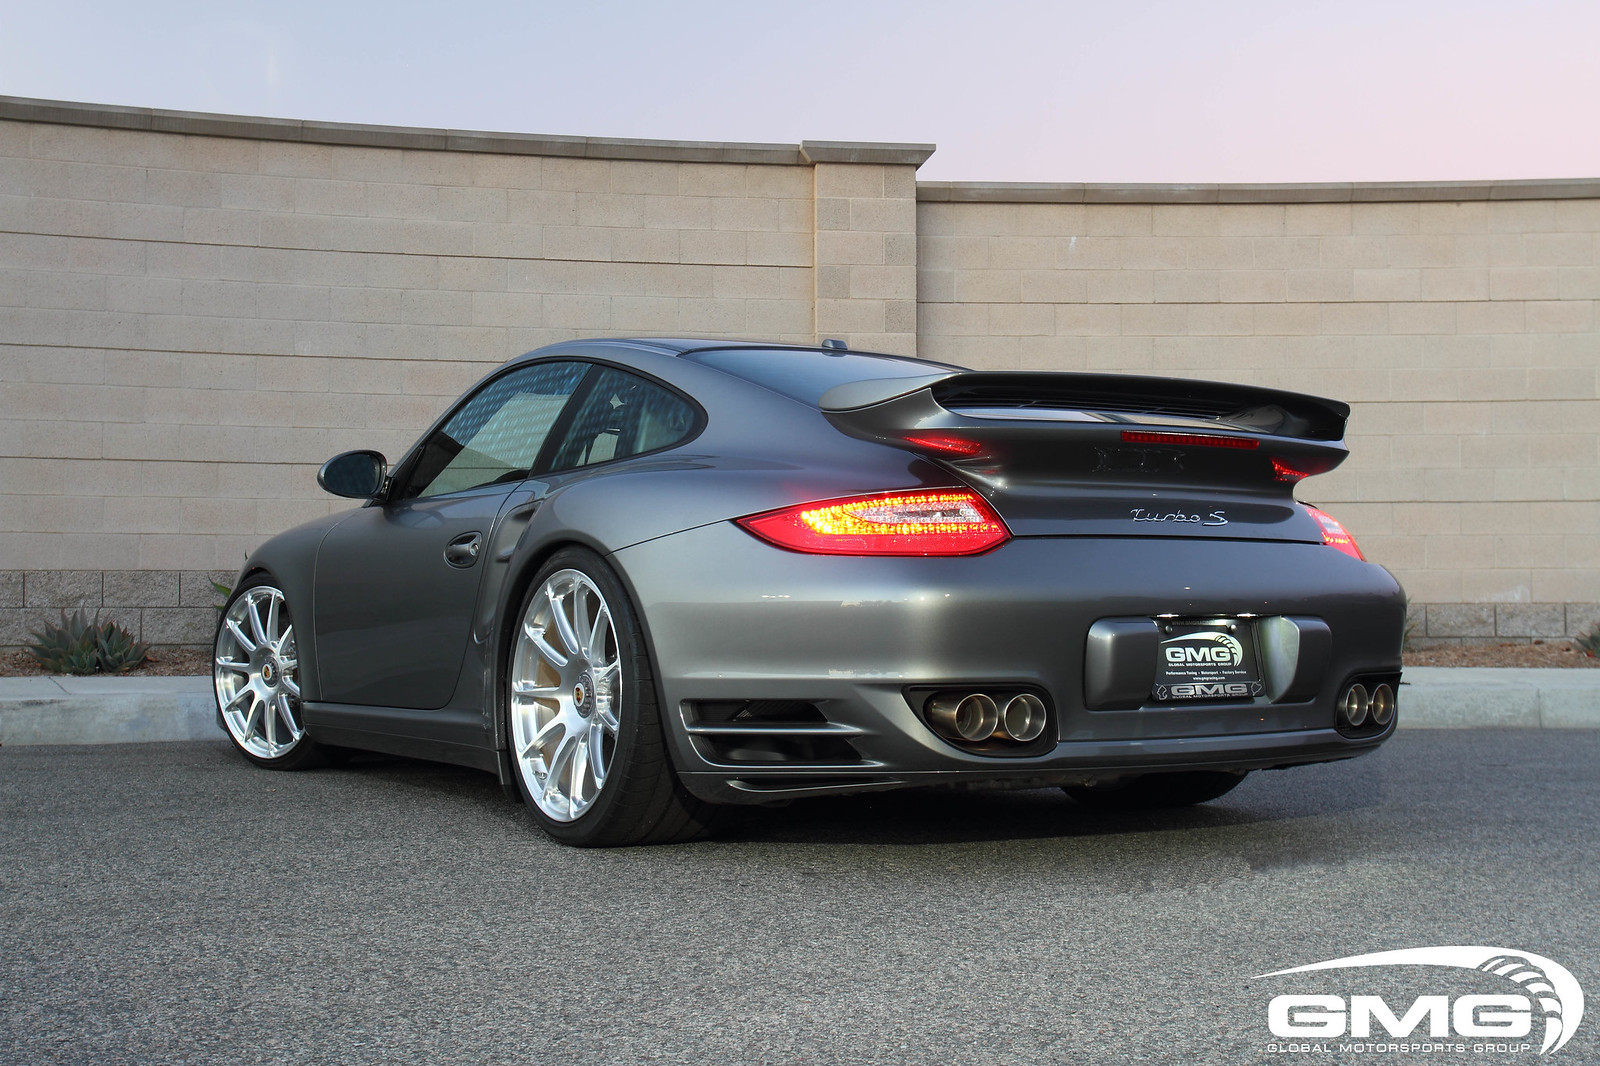 Gmg Racing Porsche 997 2 Turbo S W Gmg Exhaust